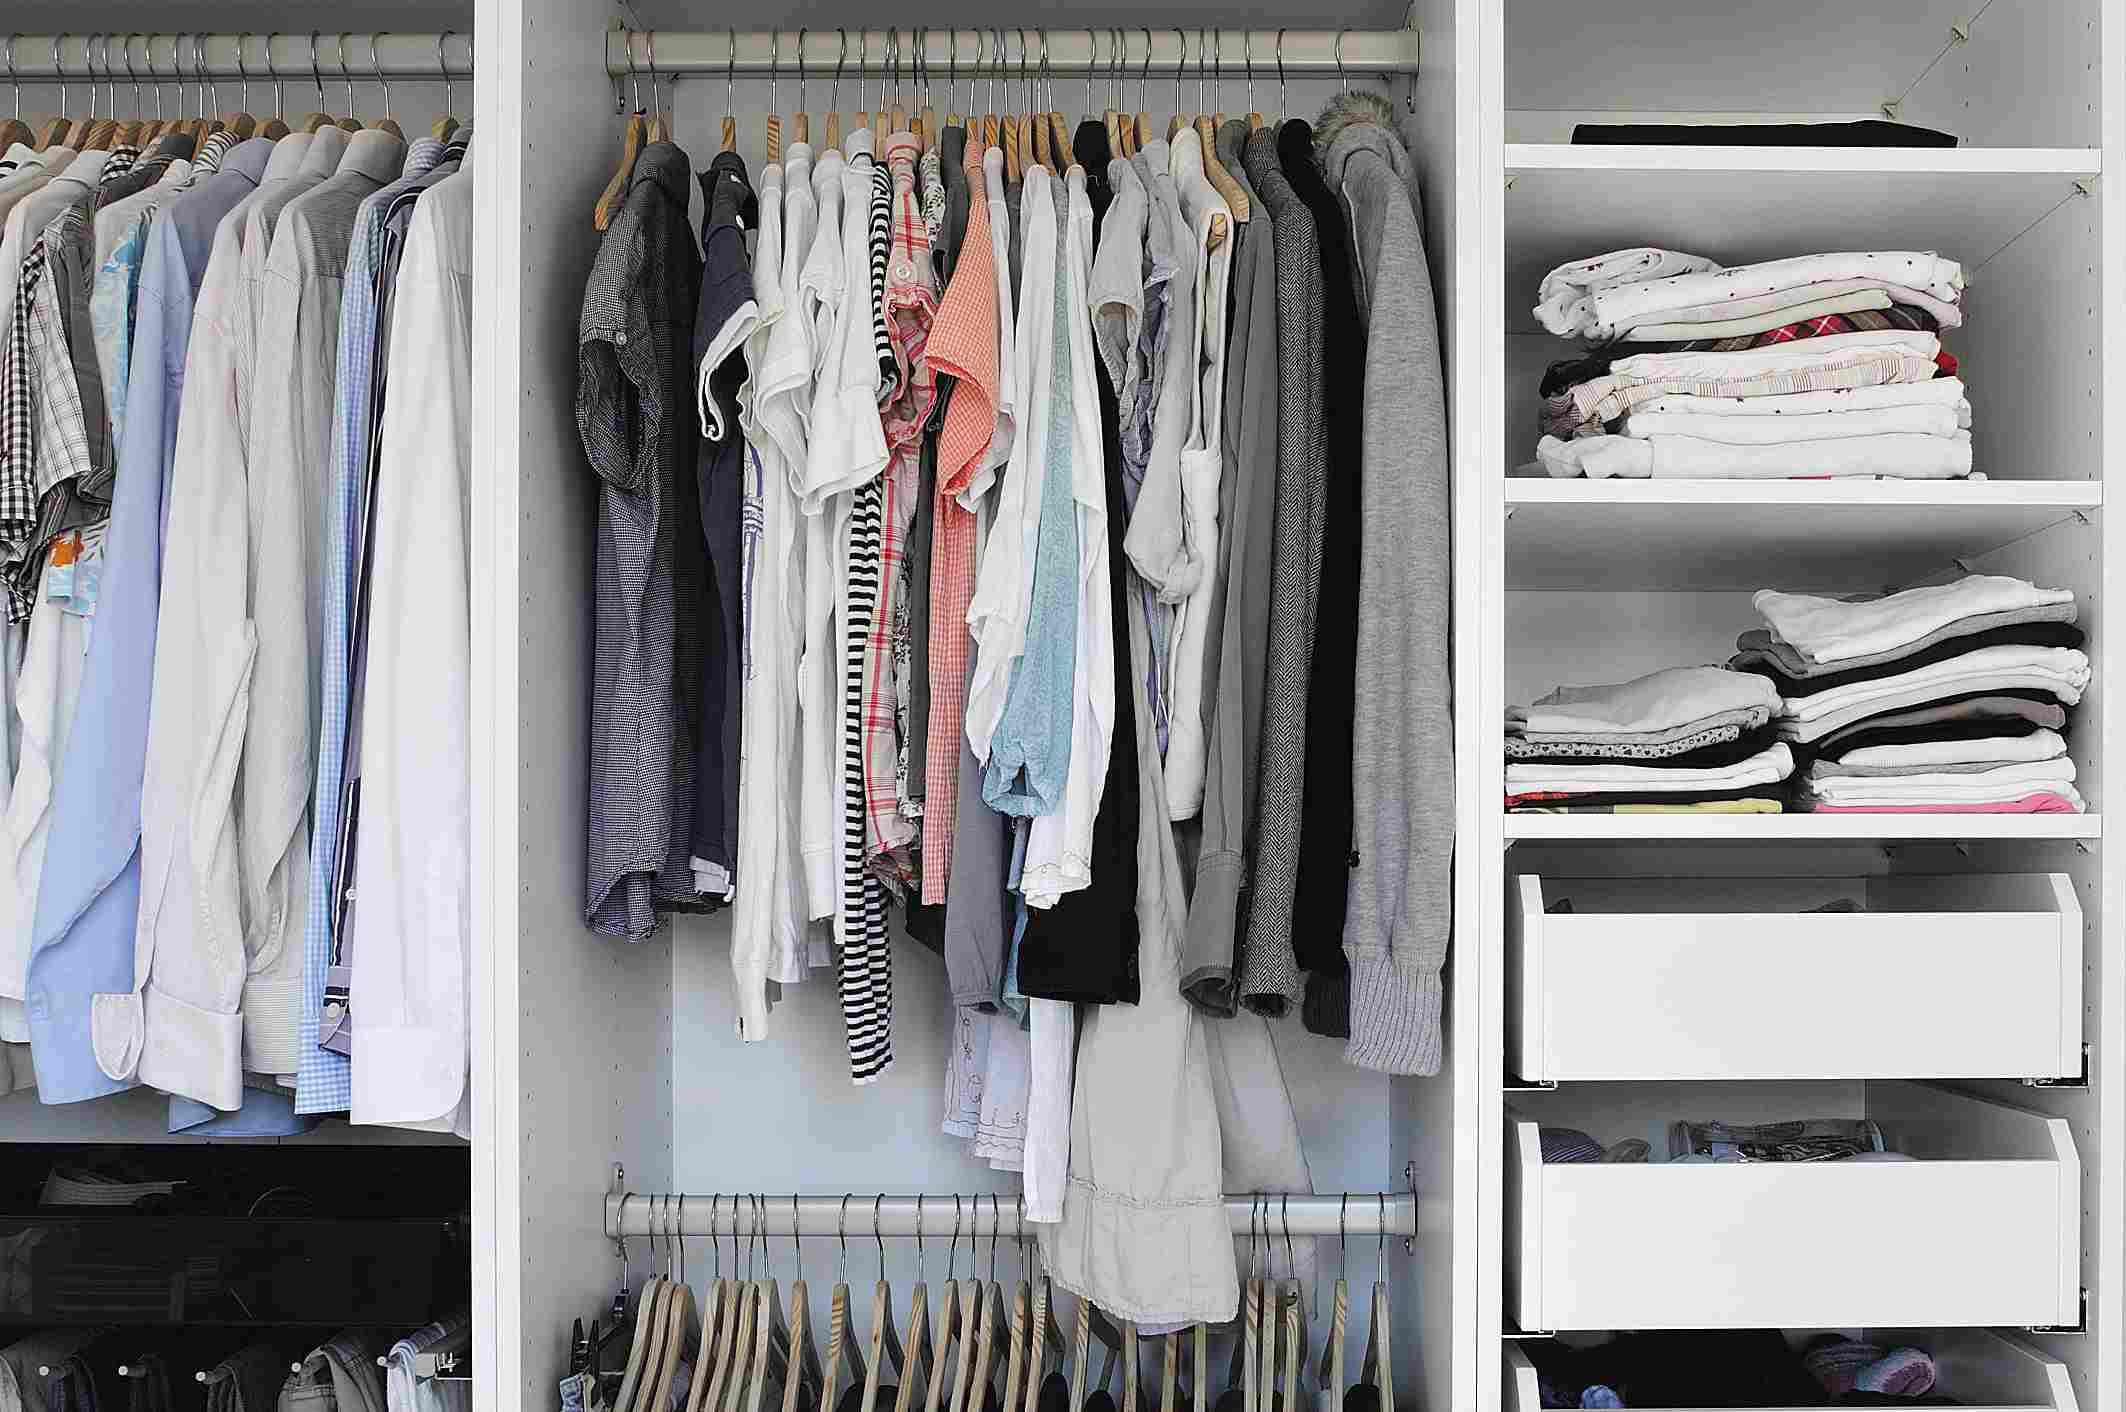 An organized closet with shirts hanging and pants folded.